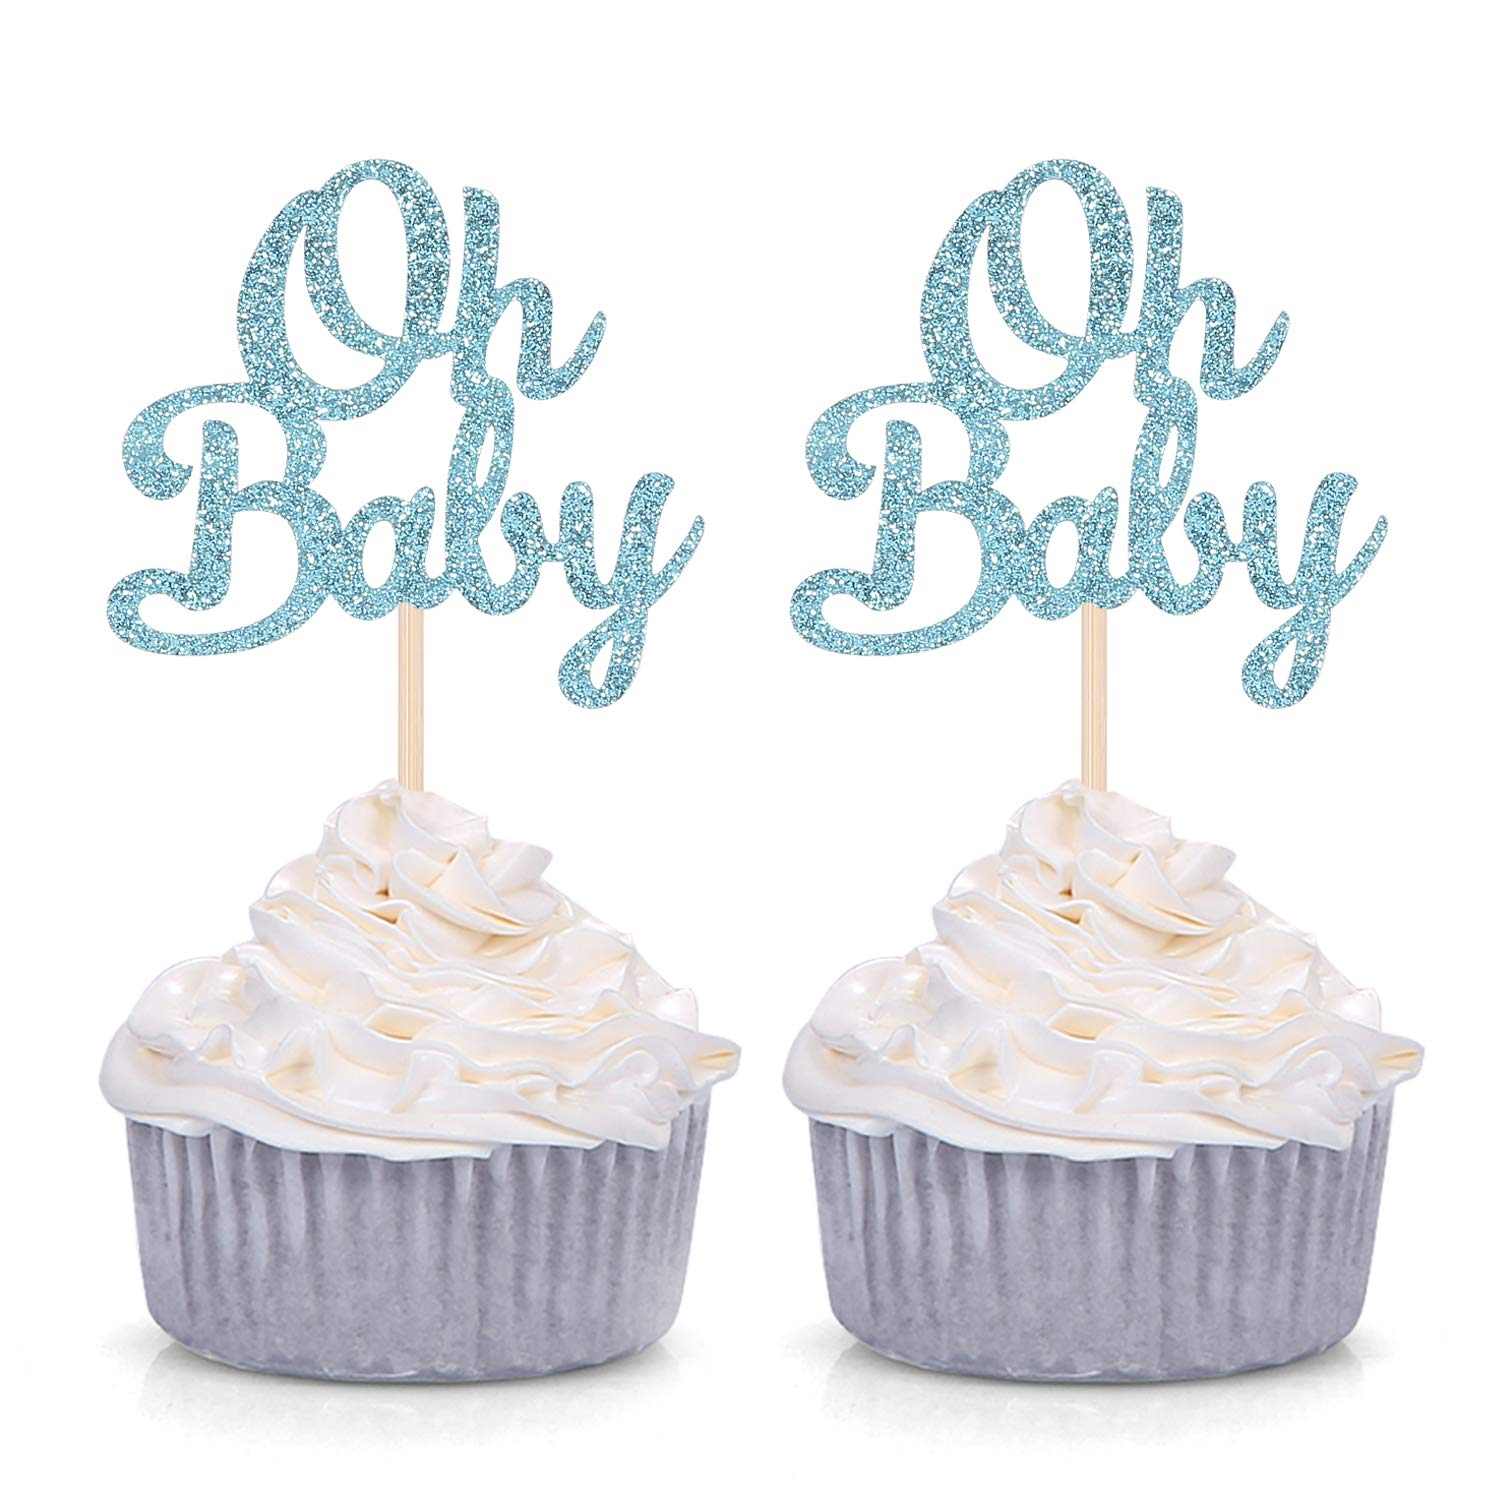 6 4 1 5 Glitter 9 Qty 12 2 Age Cupcake Toppers 8 Boy Birthday 7 3